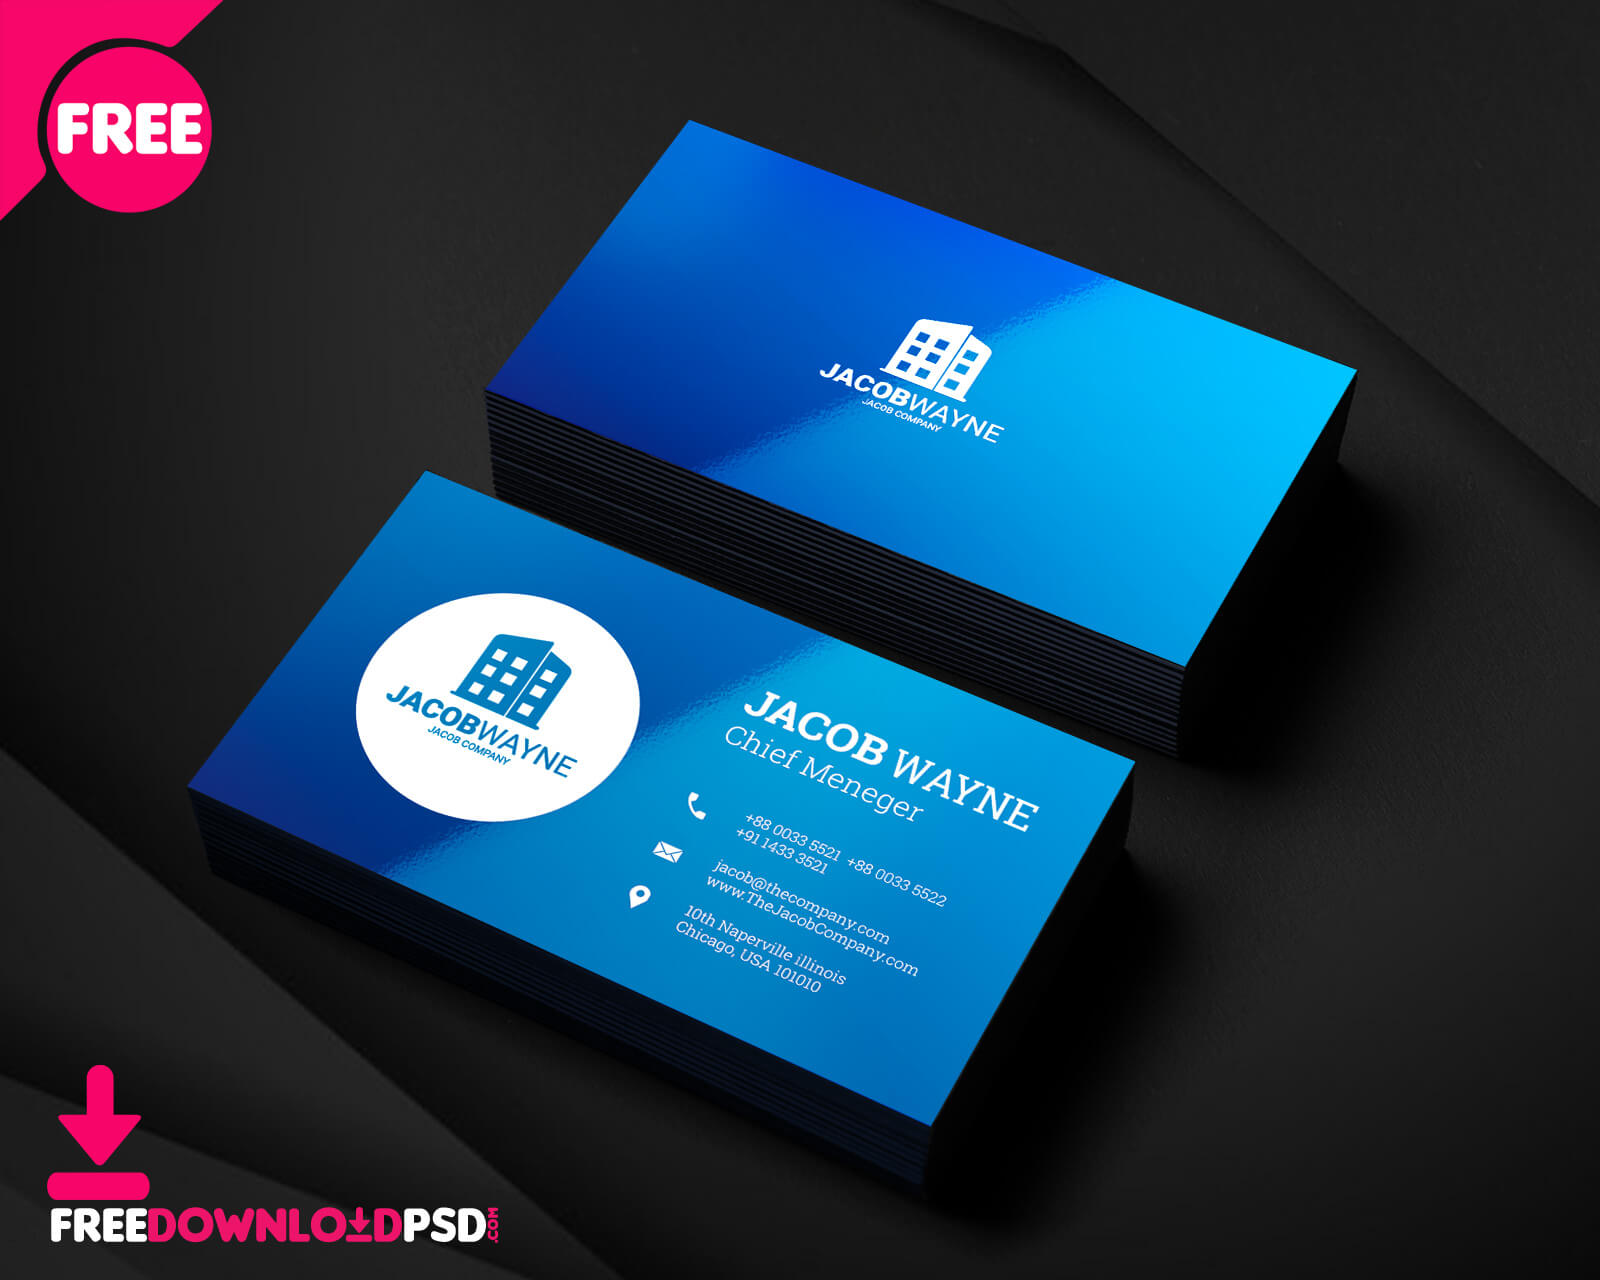 016 Free Real Estate Business Card Psd Cover Template inside Real Estate Business Cards Templates Free